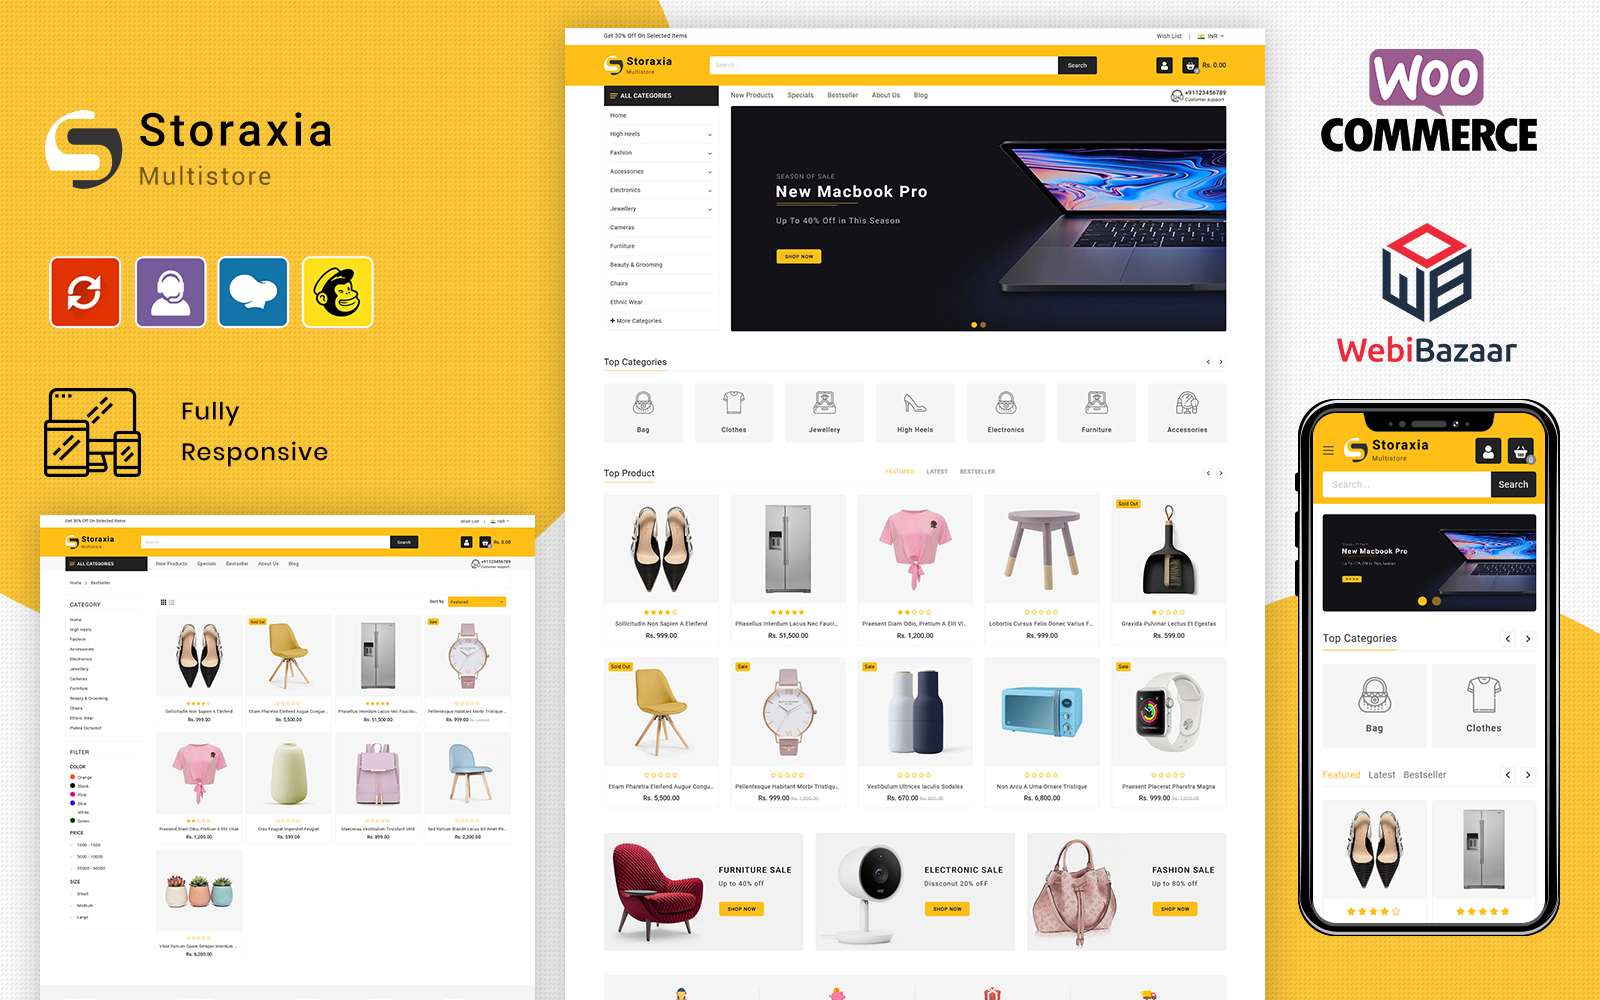 Storaxia - Multipurpose WooCommerce Theme